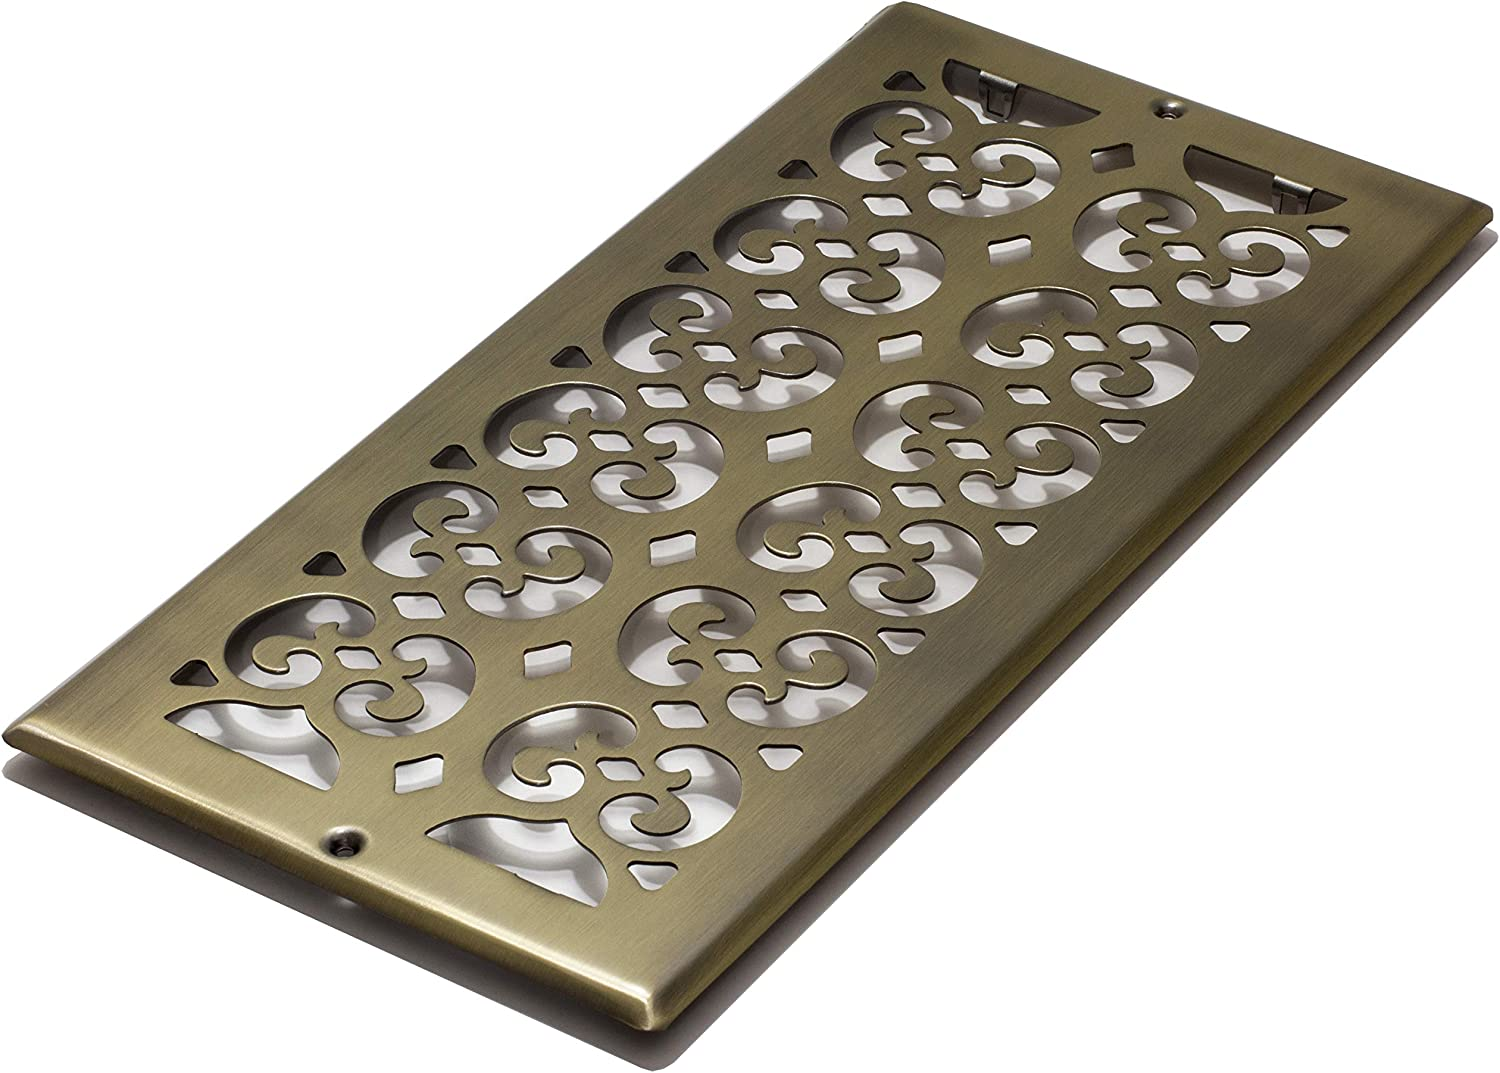 Decor Grates SP614R-A Scroll Plated, 6-Inch by 14-Inch, Antique Brass